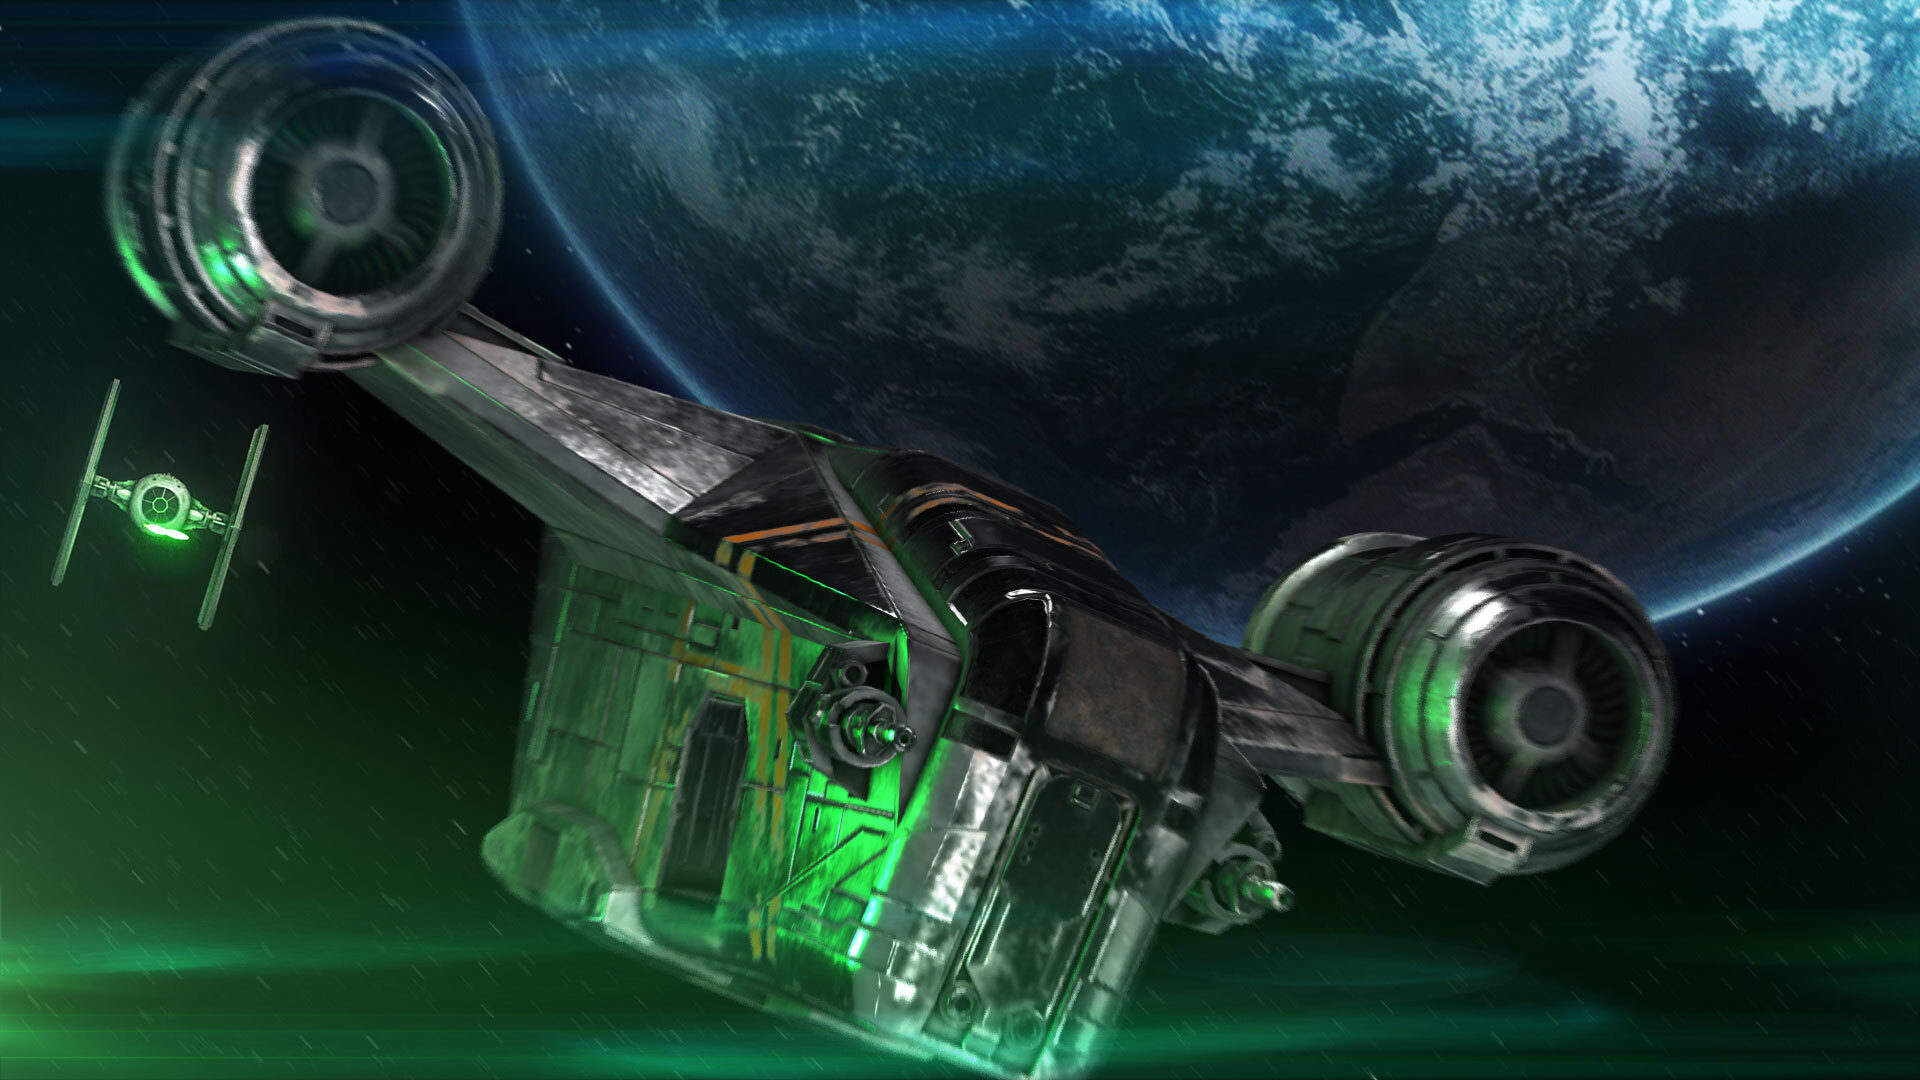 Razor Crest spaceship escaping Tie Fighter 3D VFX shot with Earth-like planet in the background